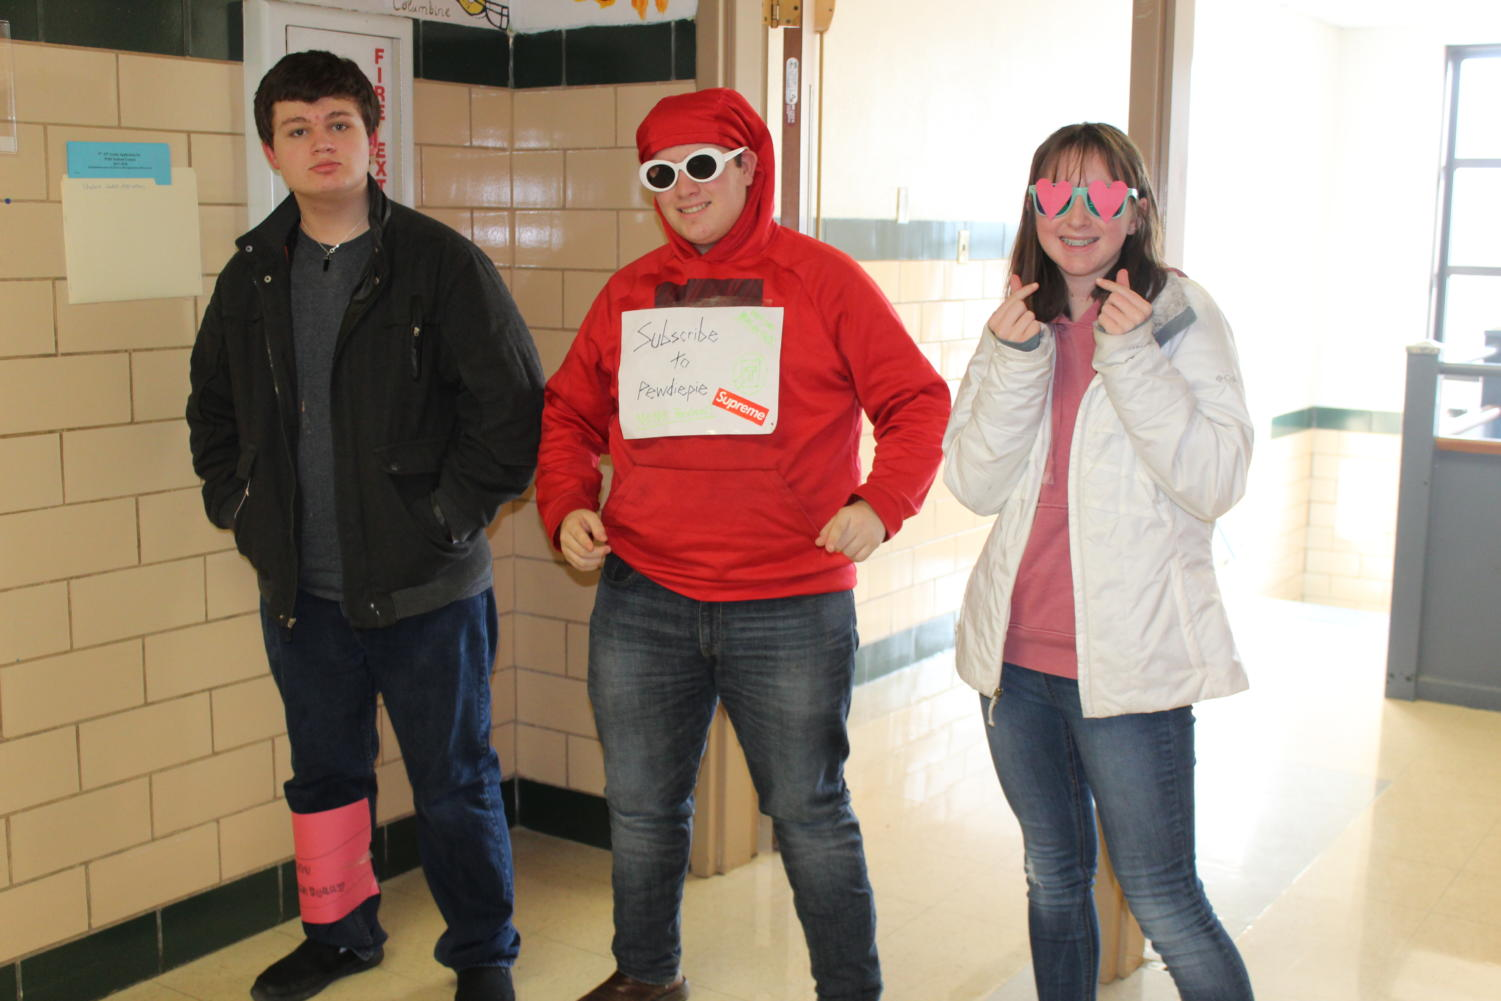 (Left to Right) Freshmen Ethan Upchurch dresses as a can of Cranberry Sprite, Frank Emma dresses as PEW NEWS and Cecelia Heimos dresses as Gin from BTS.